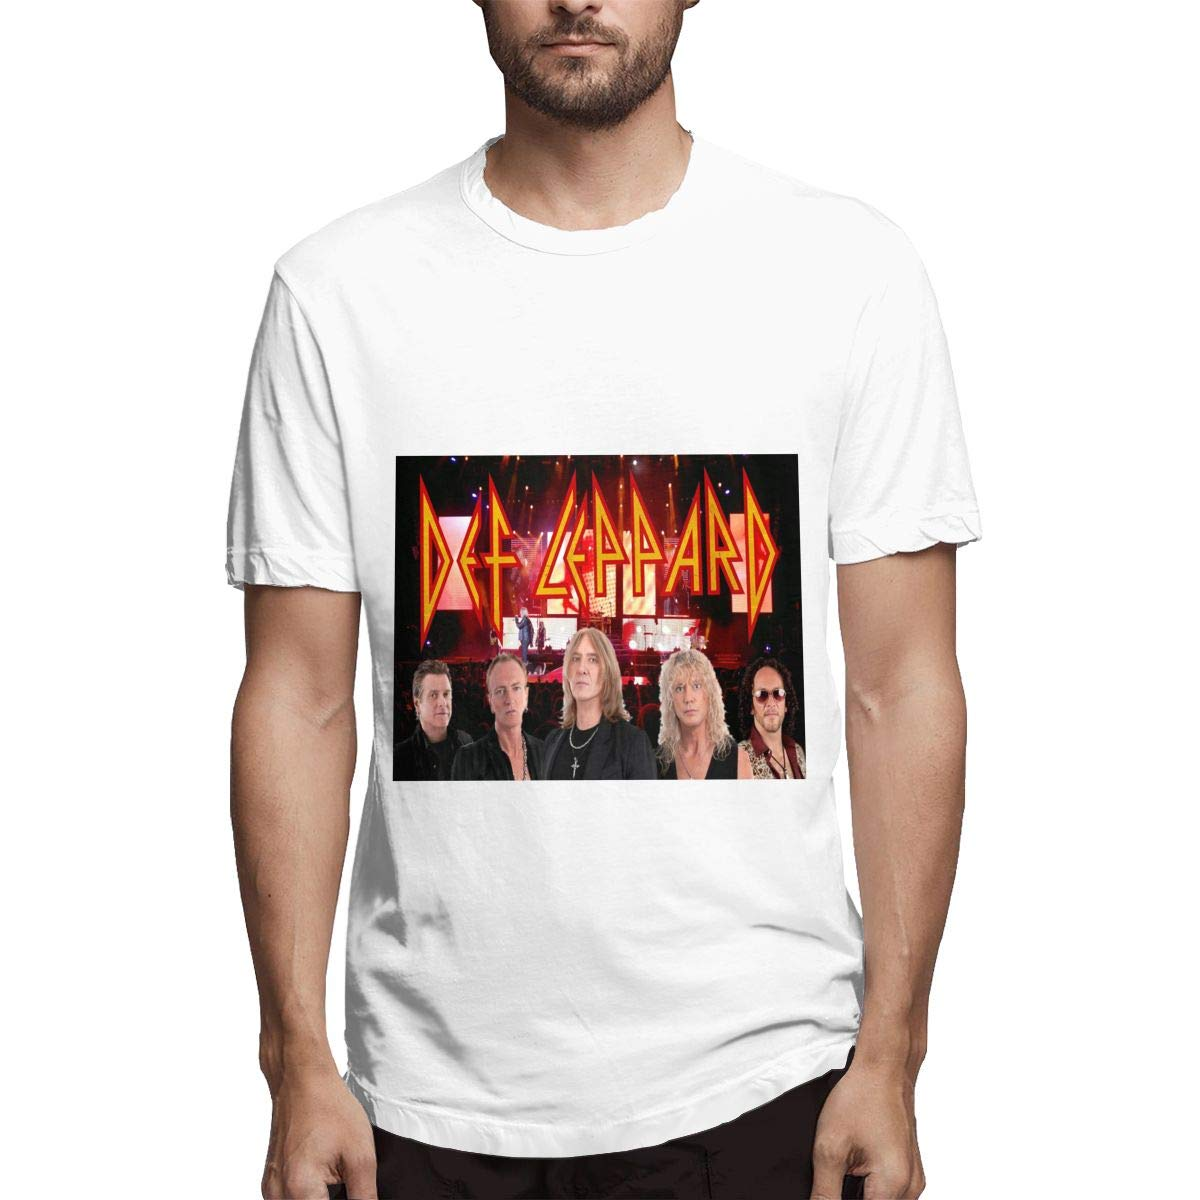 Lihehen S Def Leppard Simple Casual Round Neck T Shirts